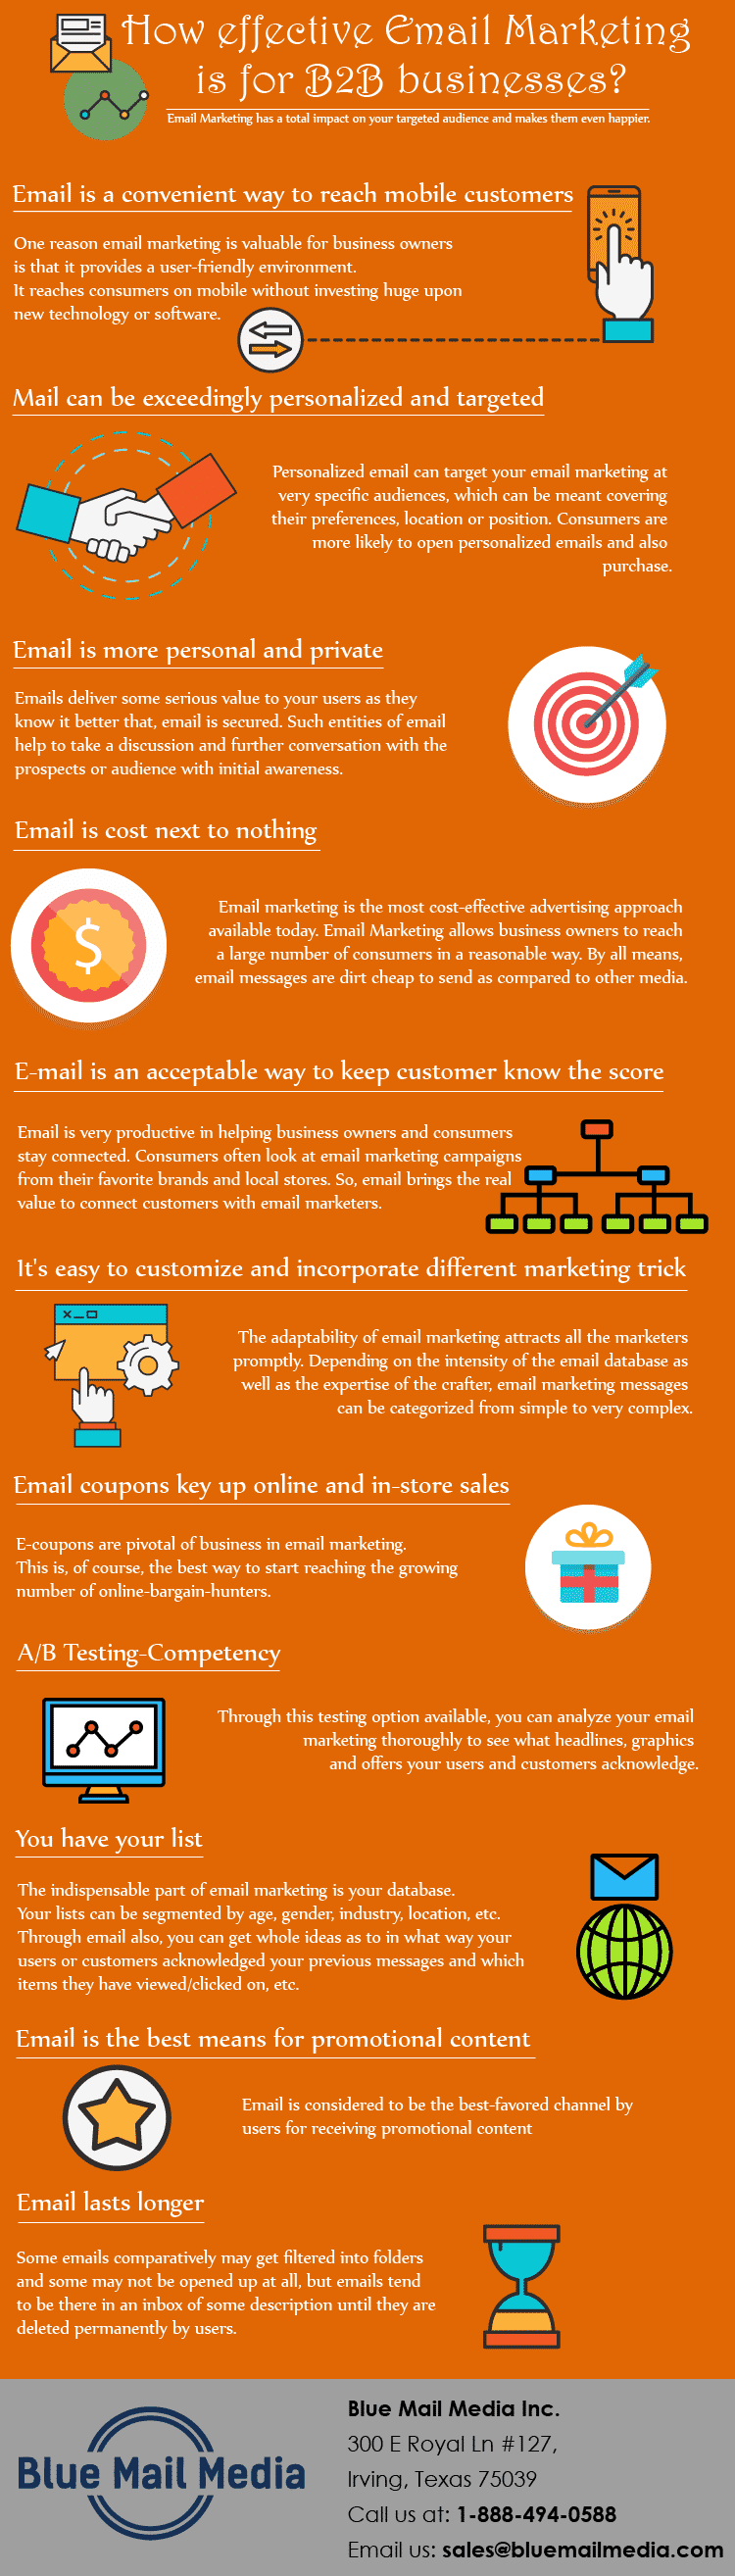 How-effective-Email-Marketing-is-for-b2b-businesses